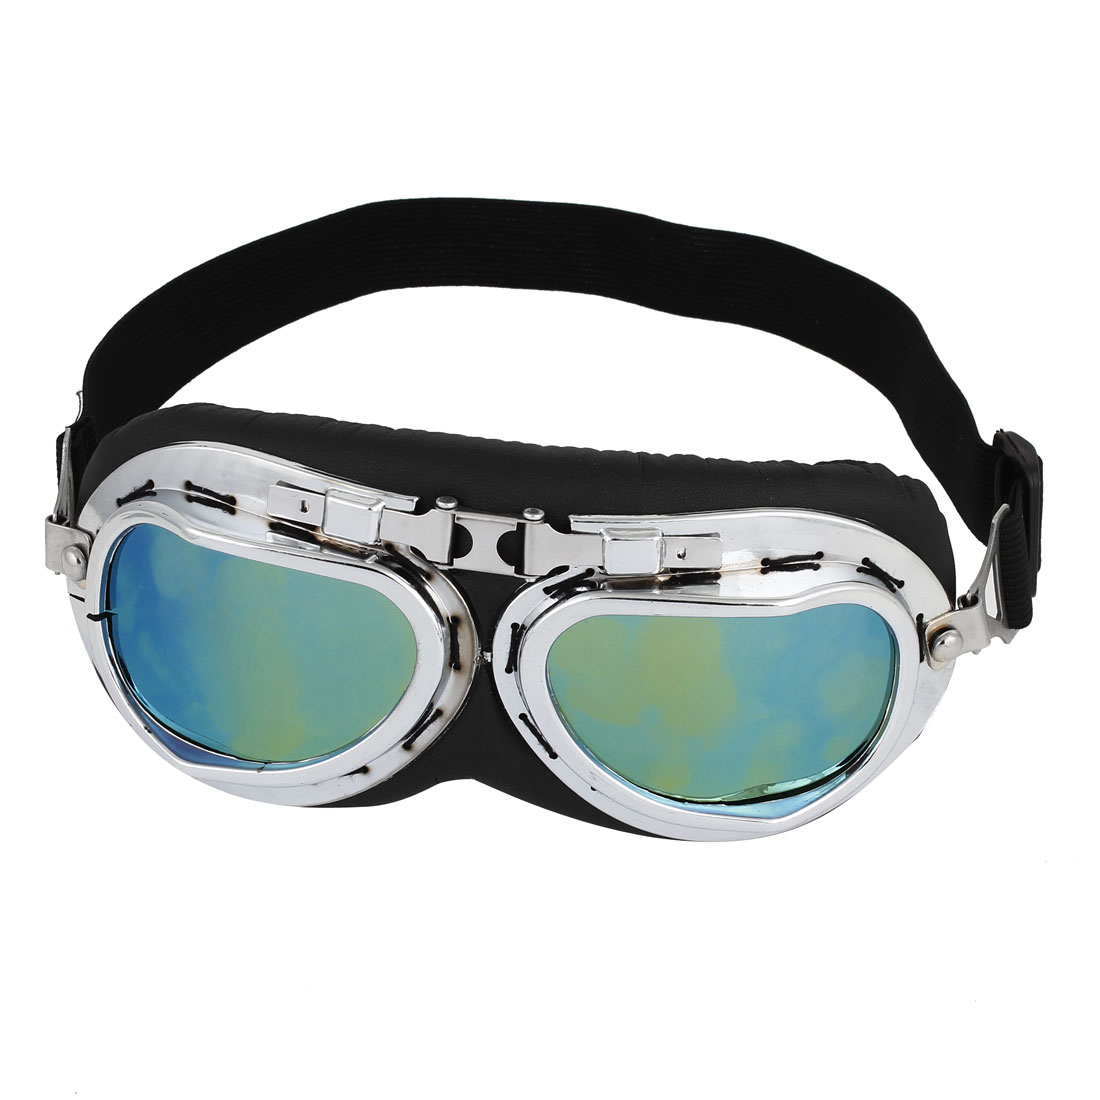 Motorcycle Bicycling Full Frame Adjustable Elastic Strap Colored Lens Goggles Glasses Sunglasses